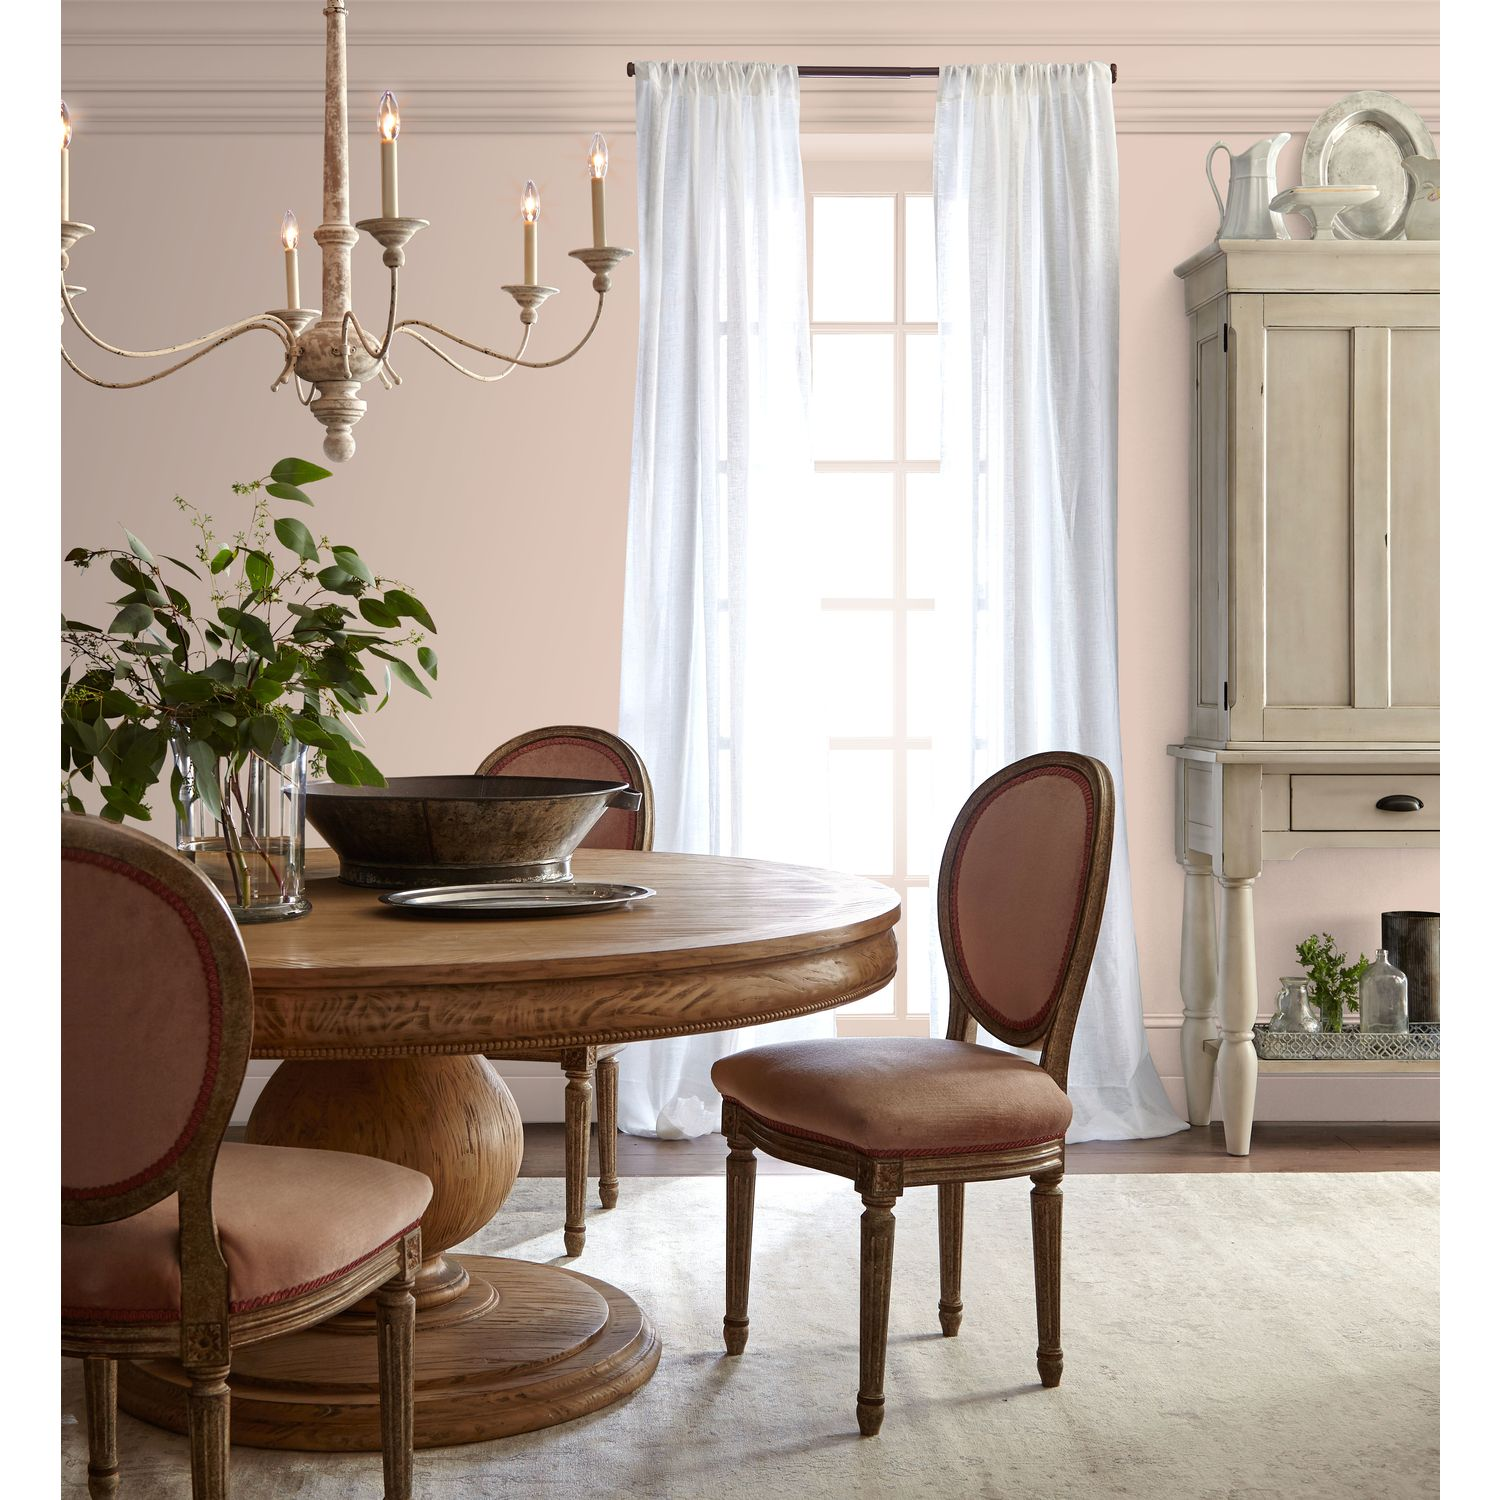 16 Best Dining Room Paint Colors, How To Choose Paint Color For Dining Room